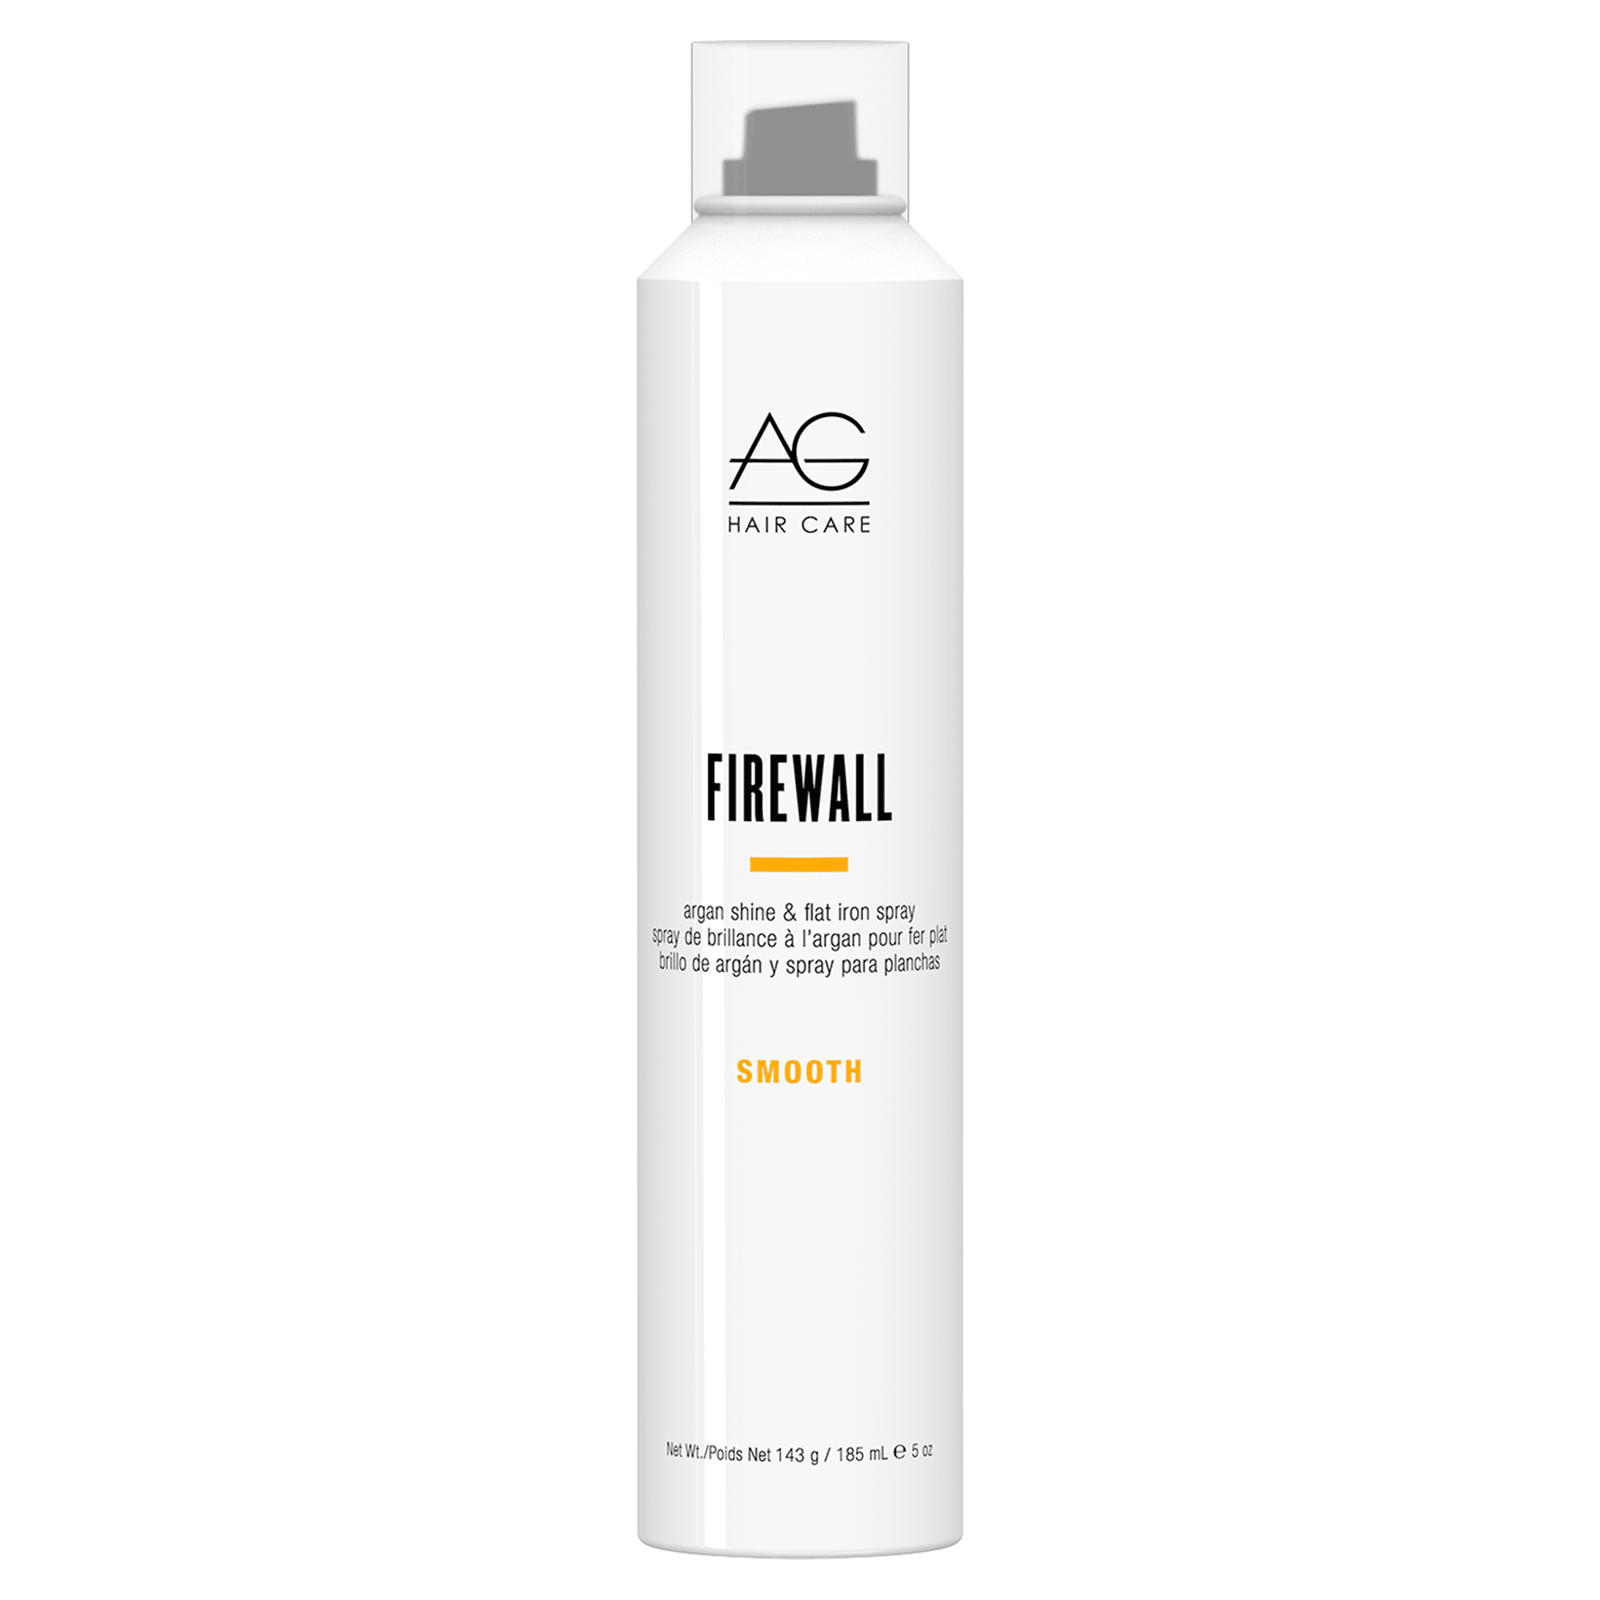 Firewall Flat Iron Spray Ag Hair Cosmoprof